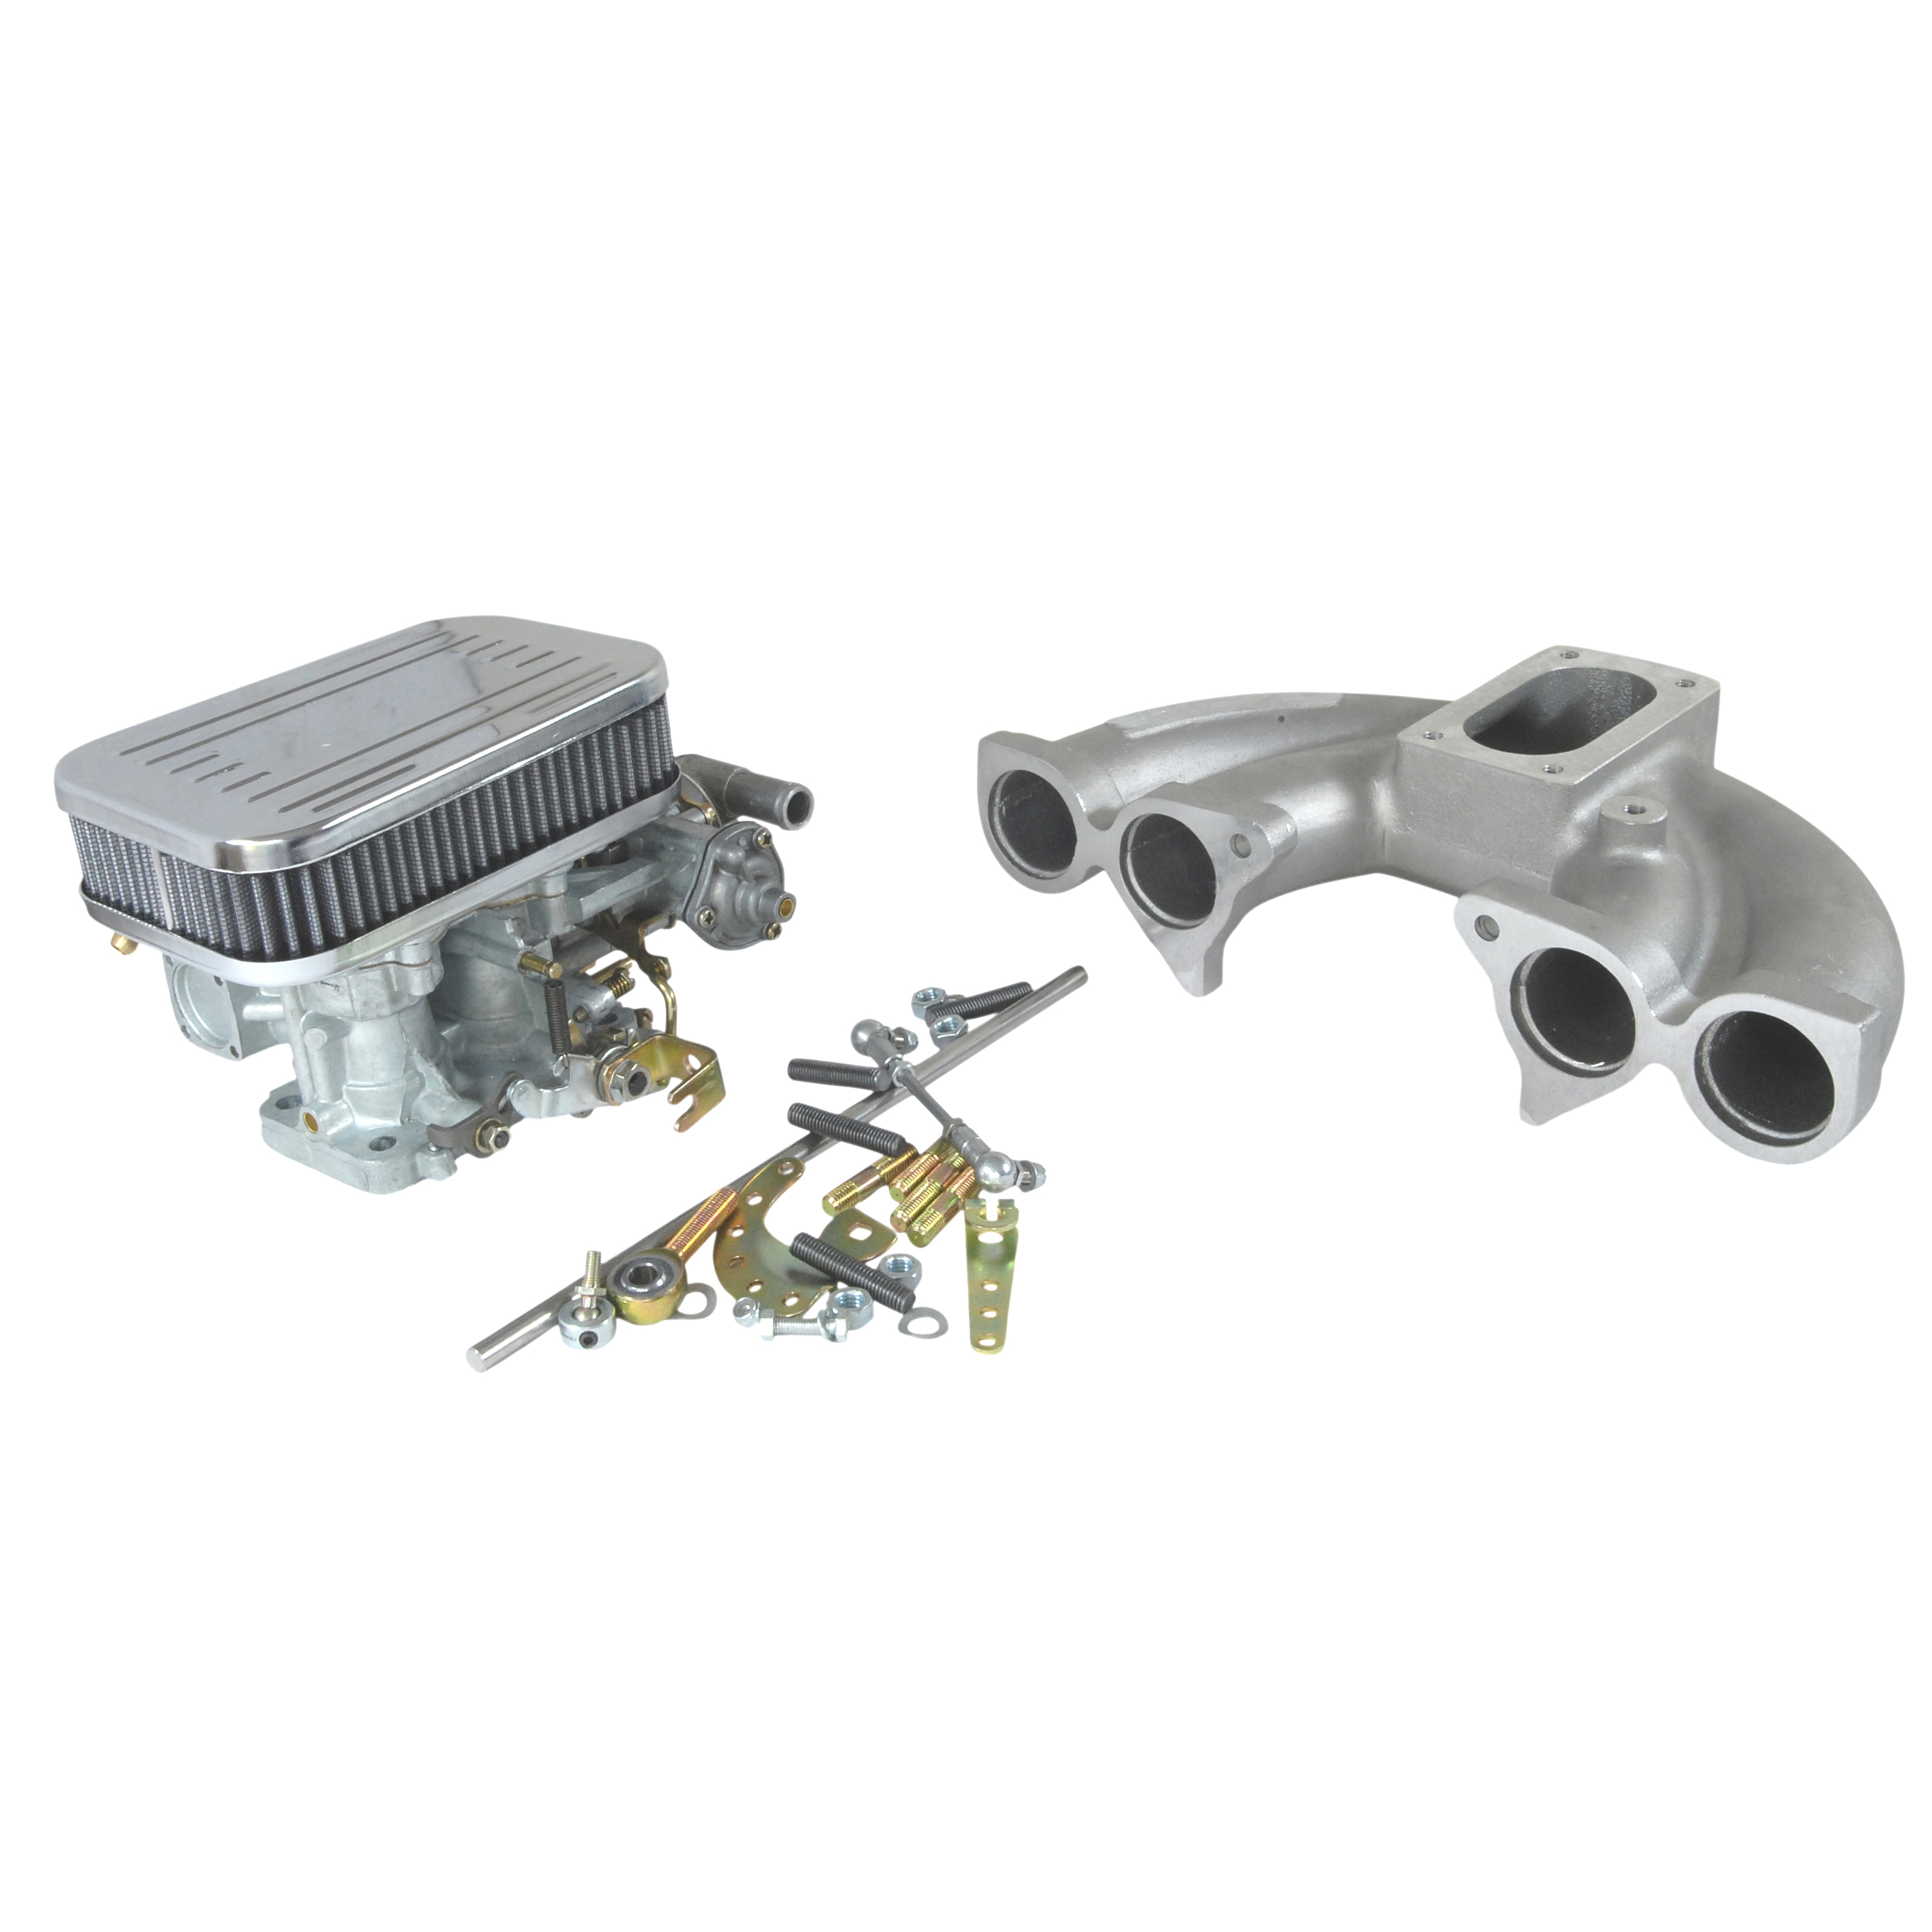 WEBER 32 / 36 DGAV CARB KIT VOLVO B18 / B20 ENGINE 120 / 140 / 240 / 440 / 460 / 480 / P1800 / AMAZON